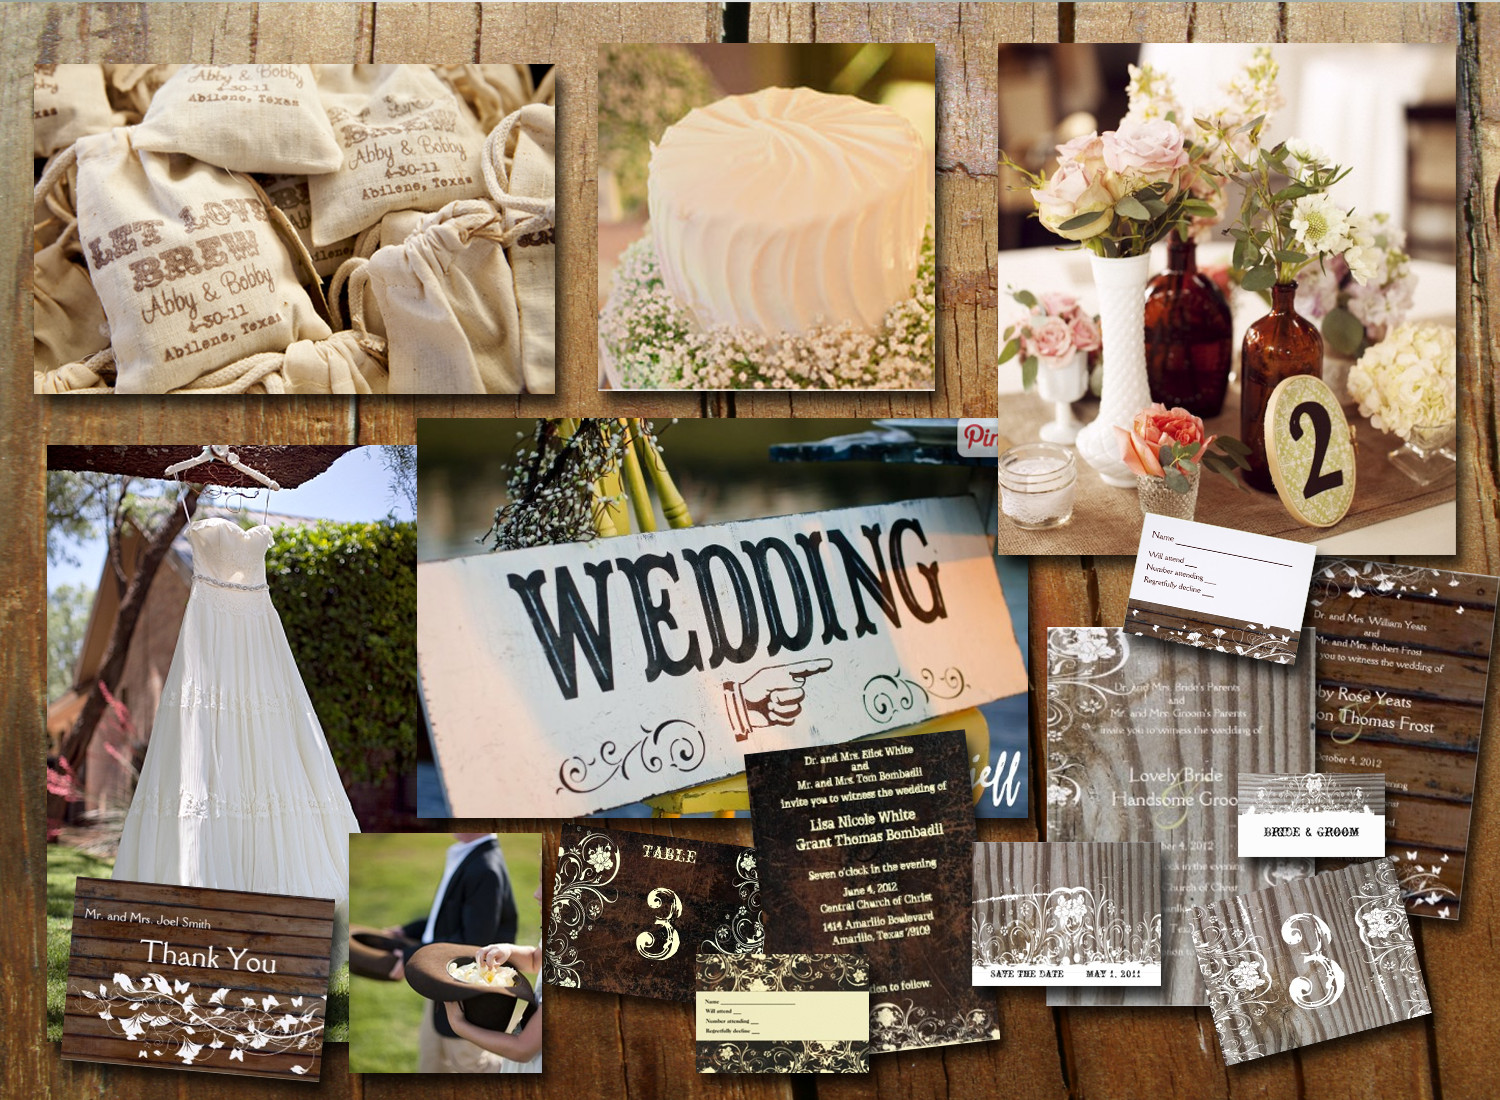 Best ideas about DIY Country Wedding . Save or Pin Inspiration Boards Now.